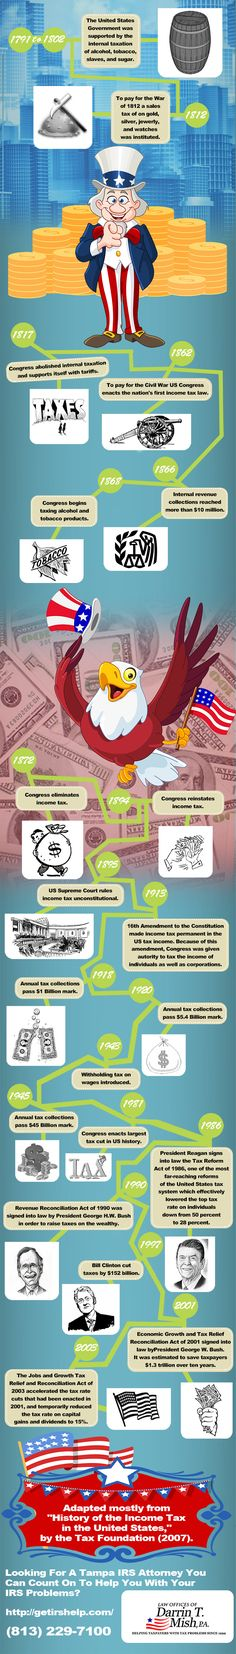 get irs help - history income tax - infographic